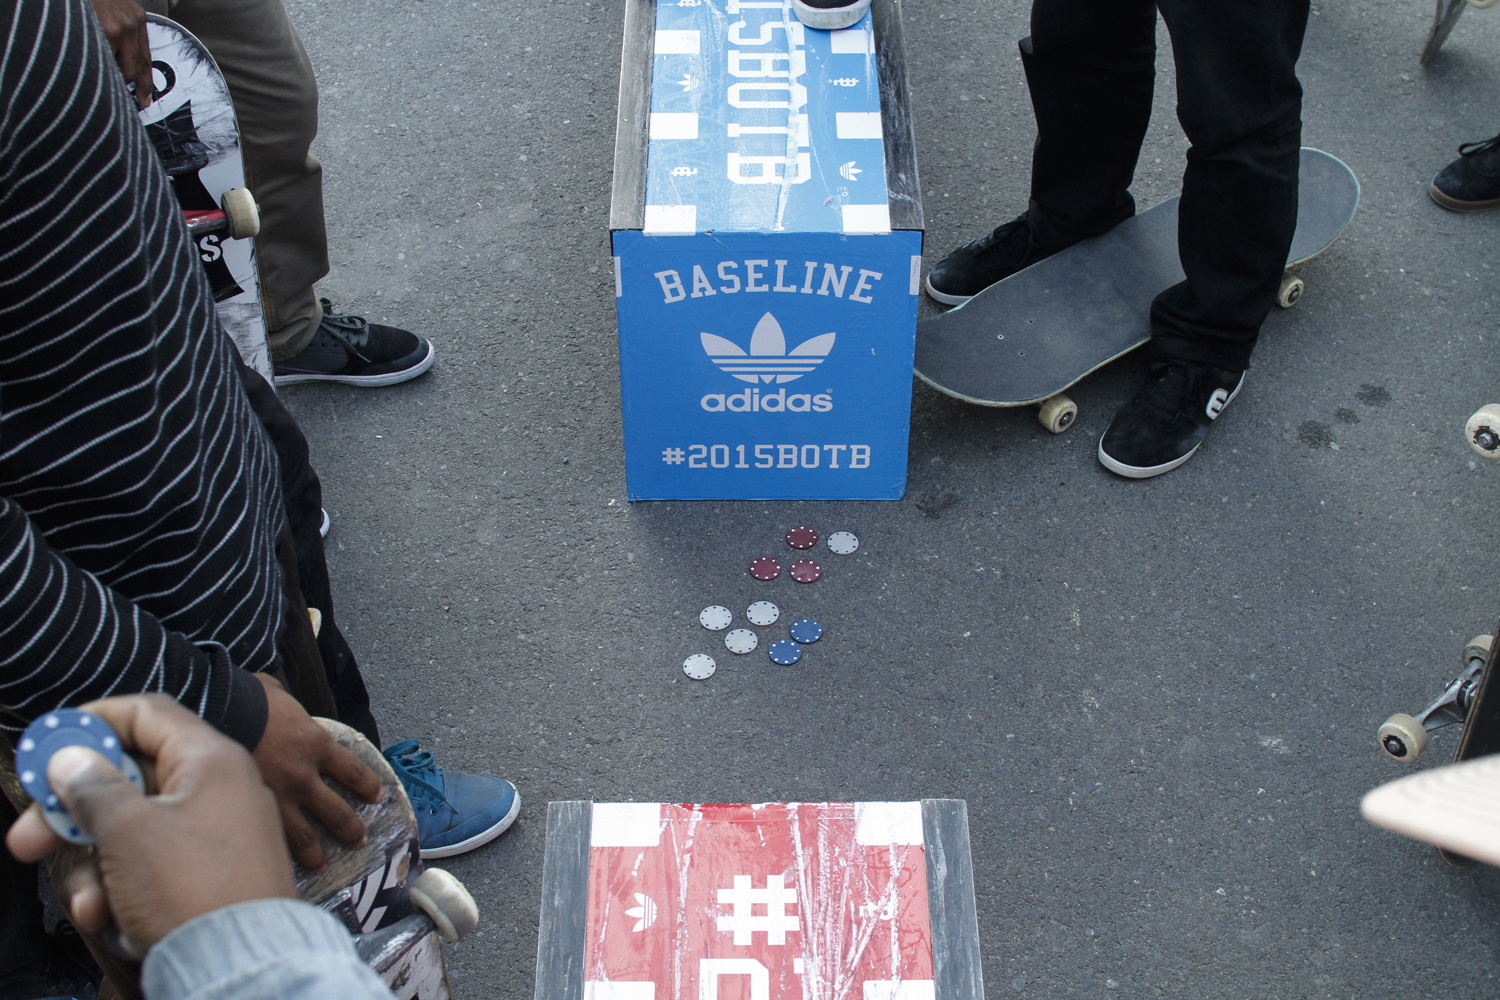 adidas BOTB 2015 Chips on the ground